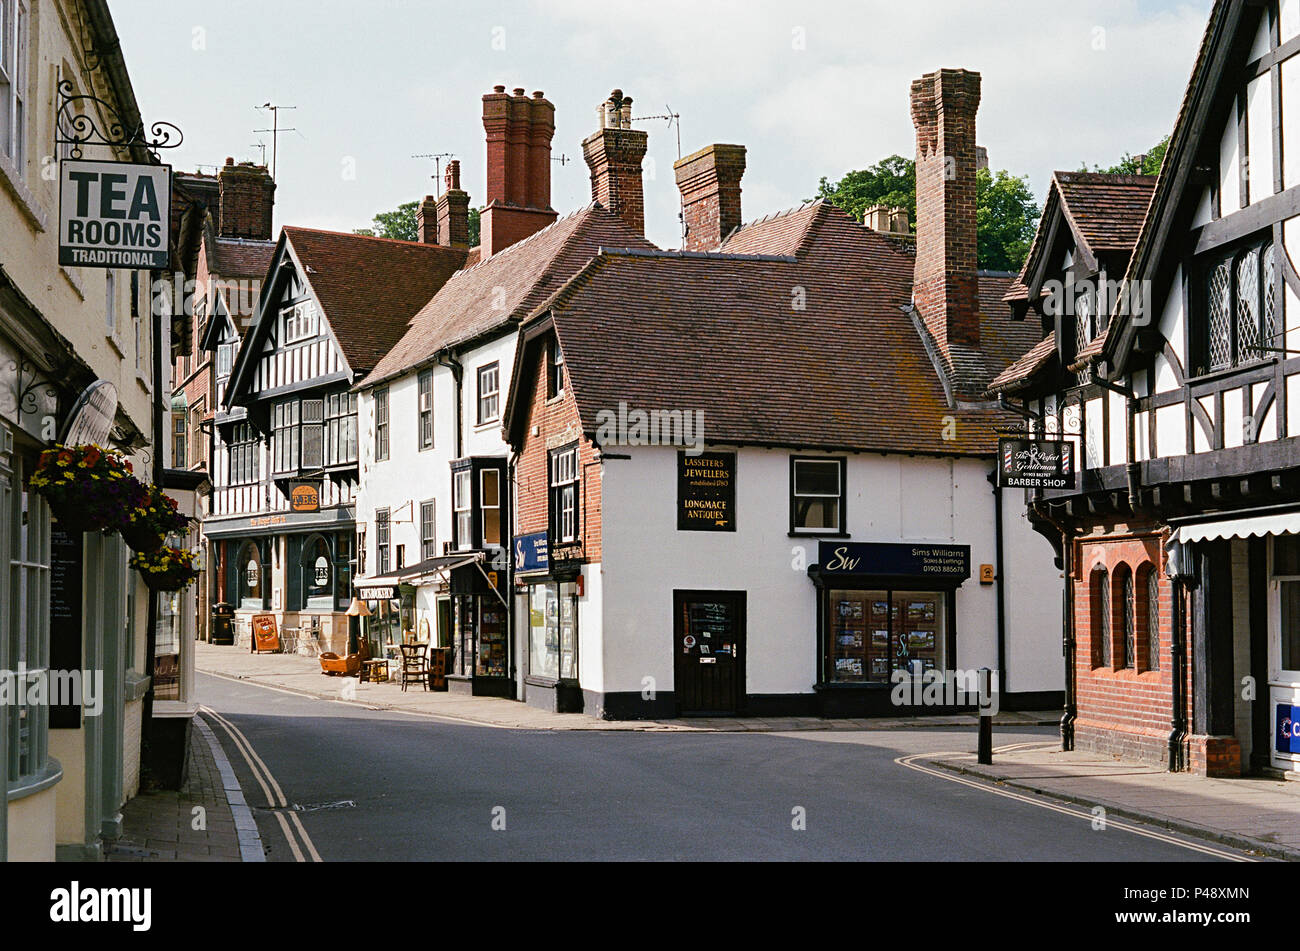 Buildings on the High Street at Arundel, West Sussex, Southern England - Stock Image